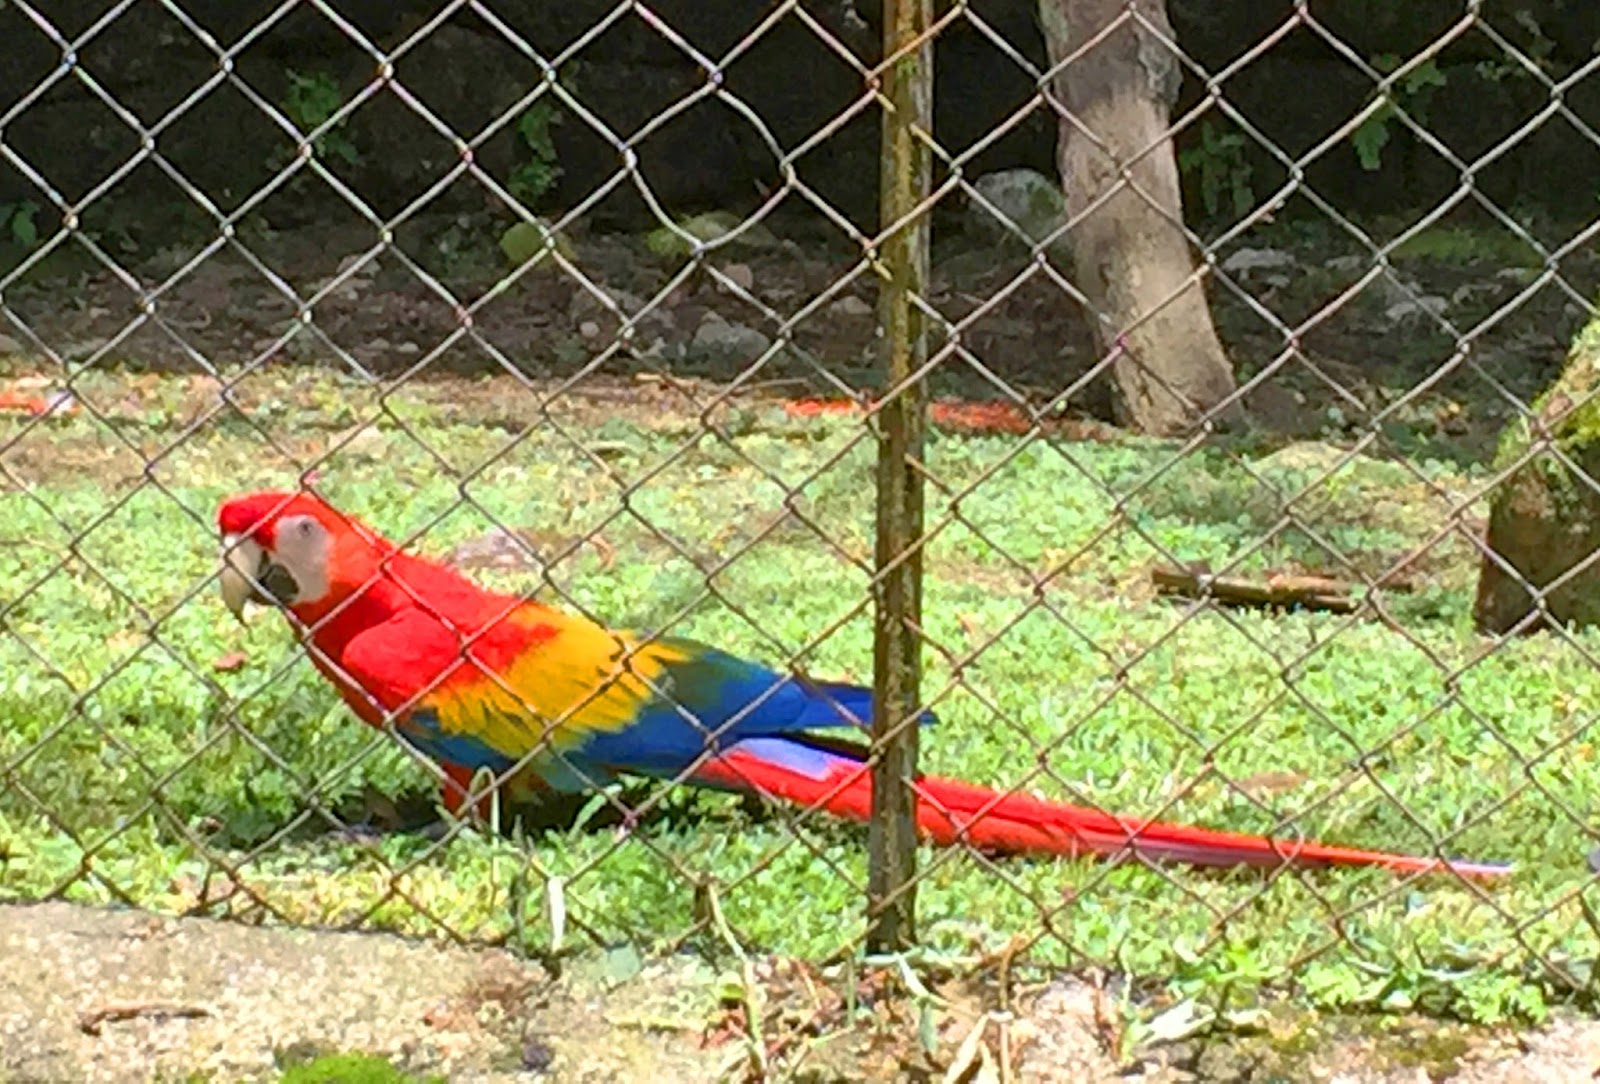 The Guacamaya is one of the most colorful and beautiful birds from Panama!